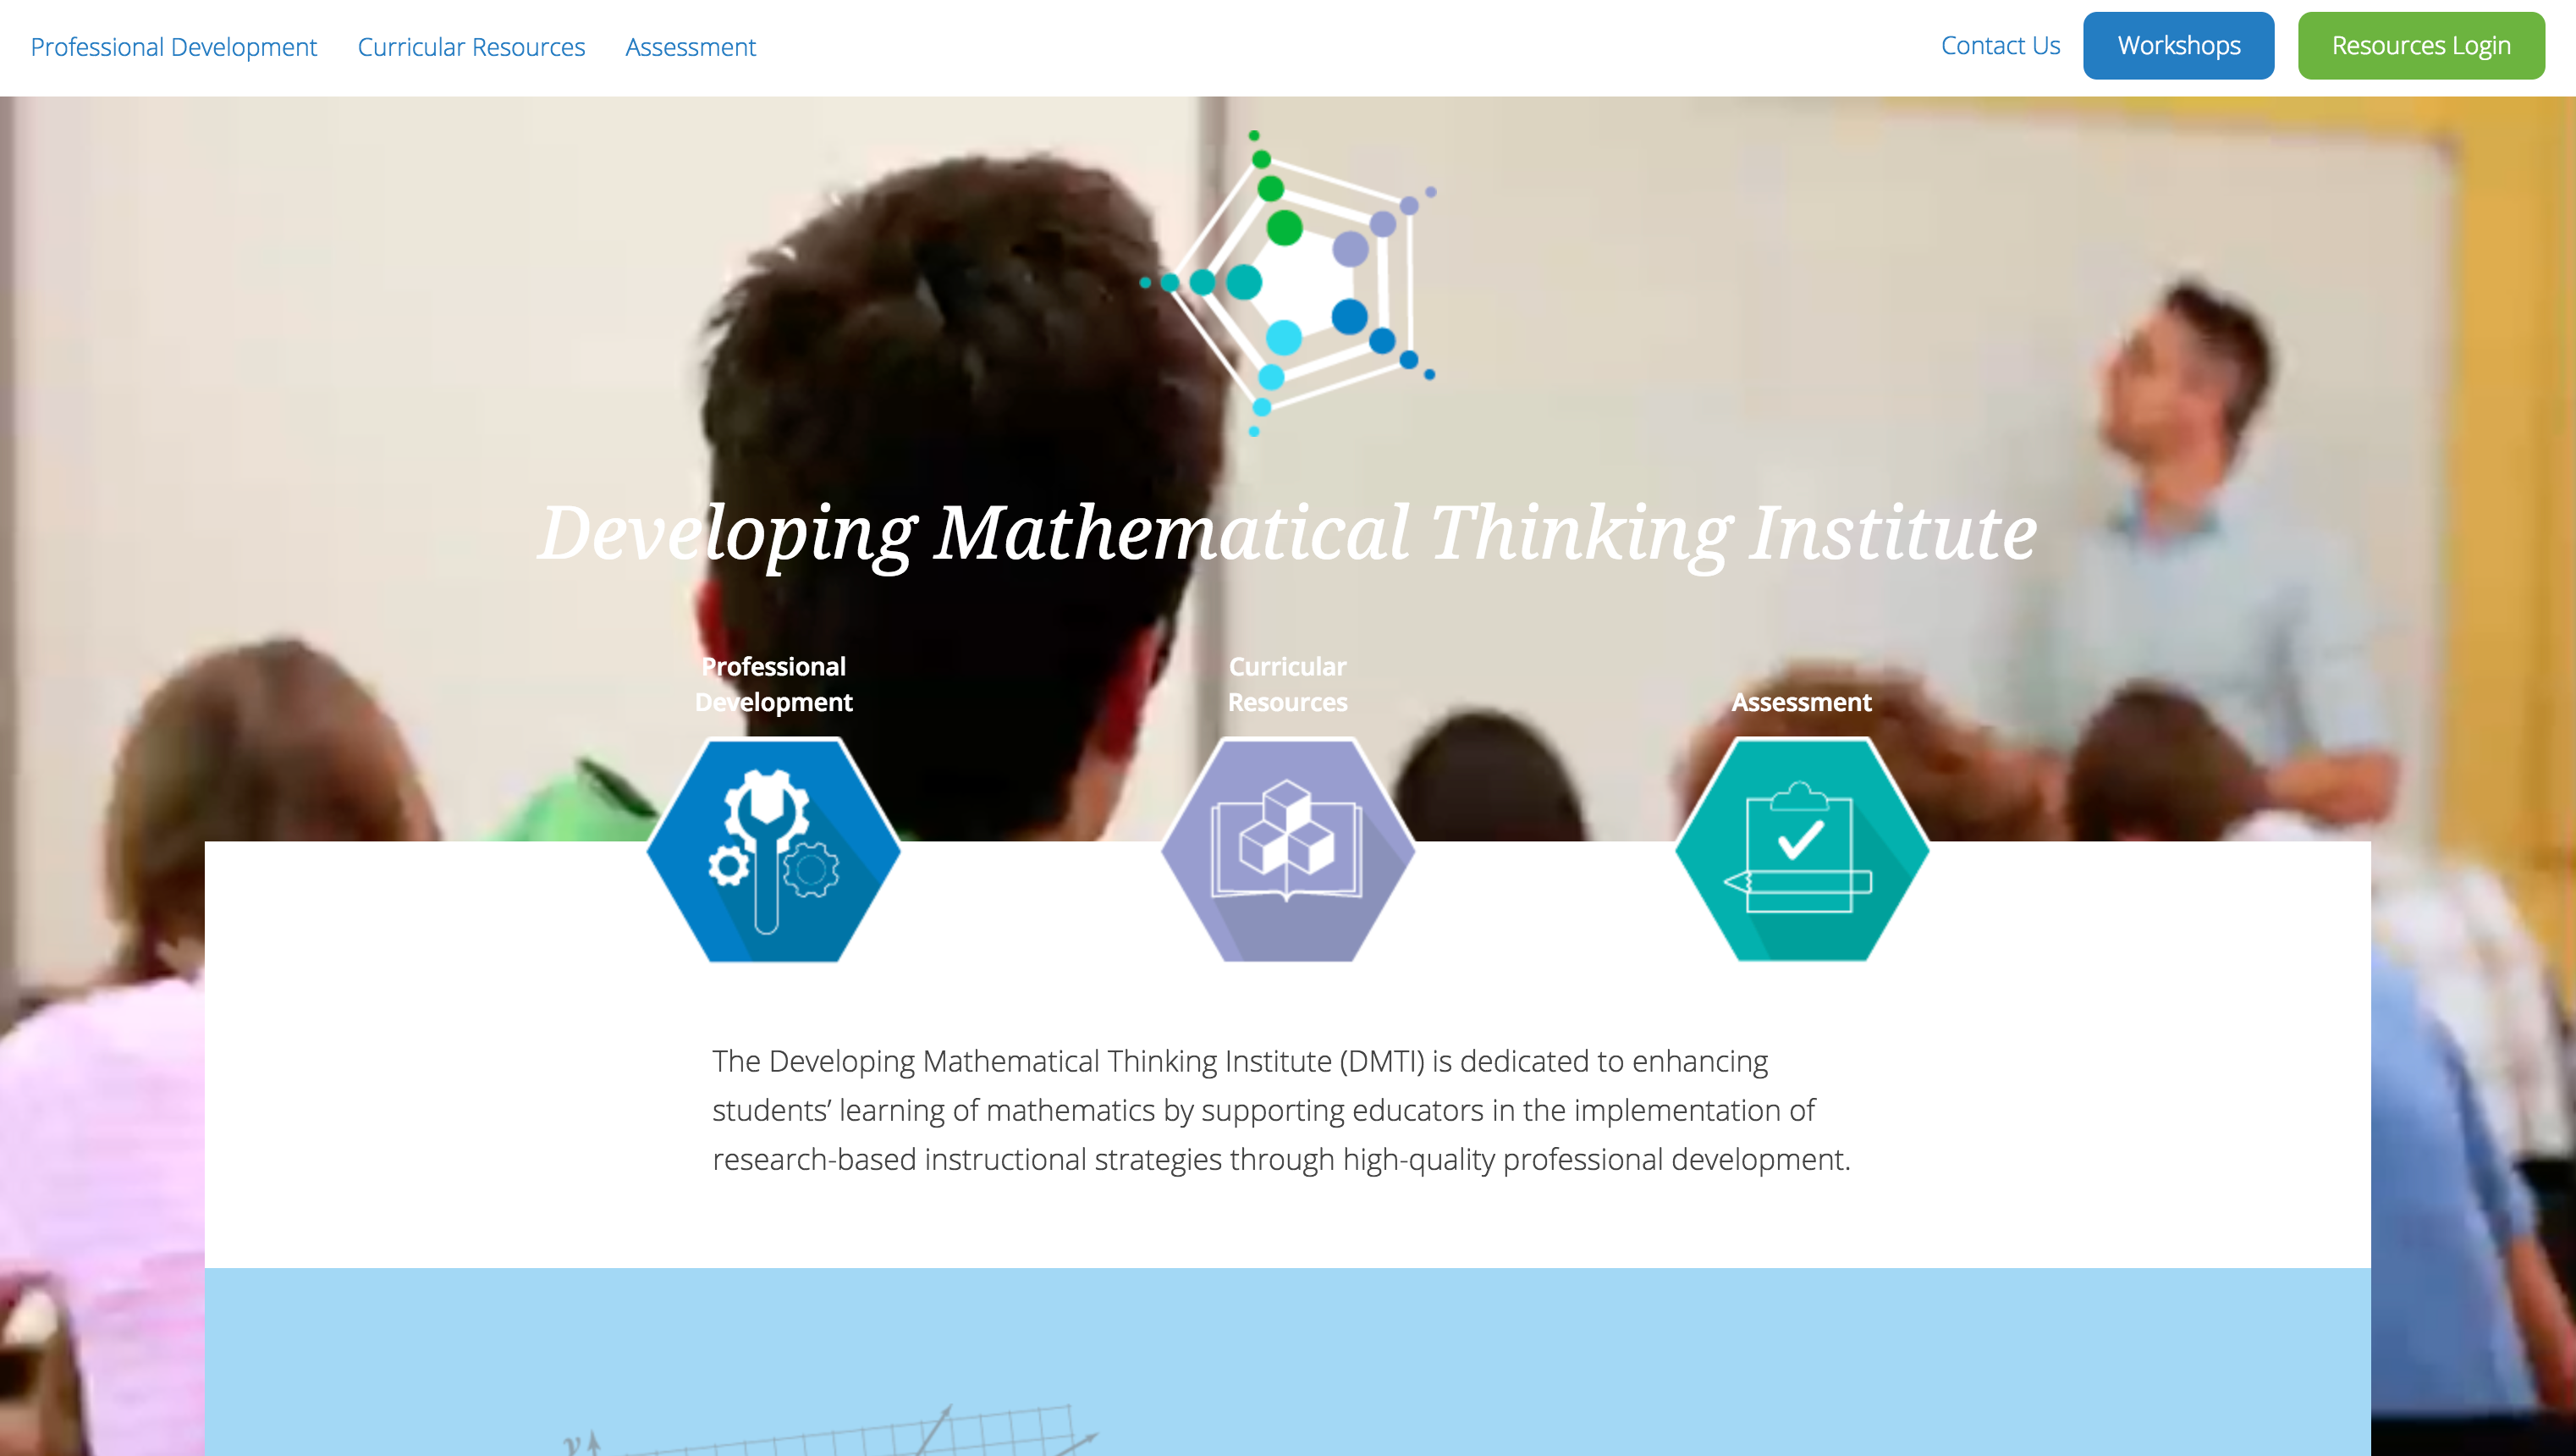 Developing Mathematical Thinking Institute